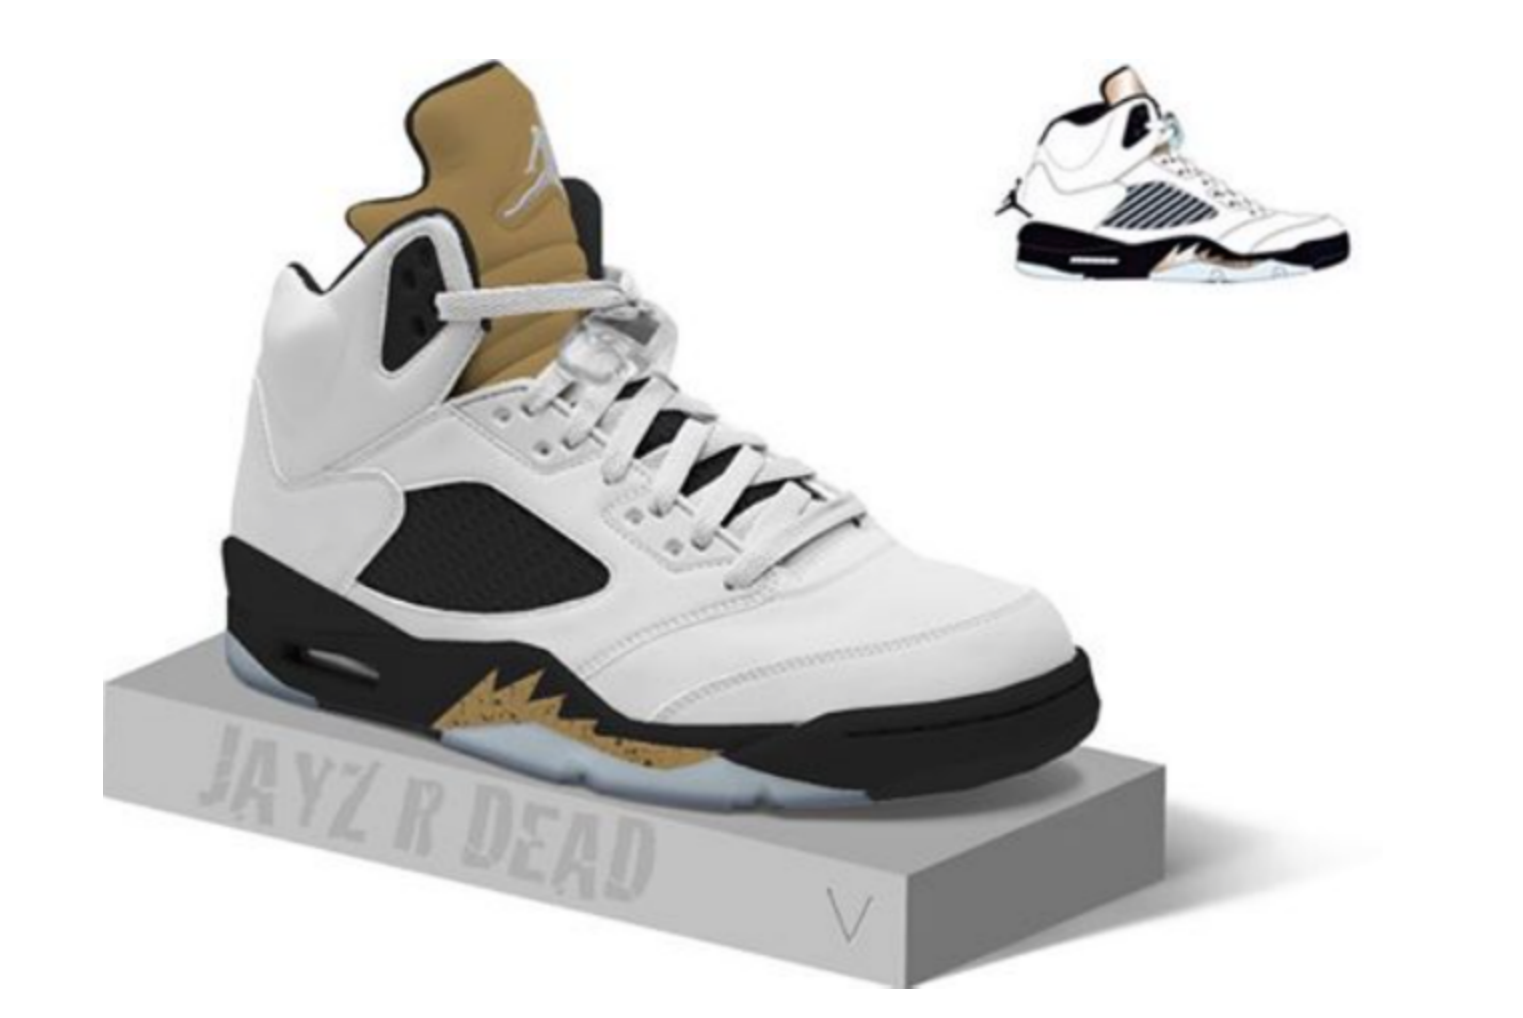 9cb97d324039 2018 Authentic Air Jordan 5 Olympic White BlacK Metallic Gold Coin ...